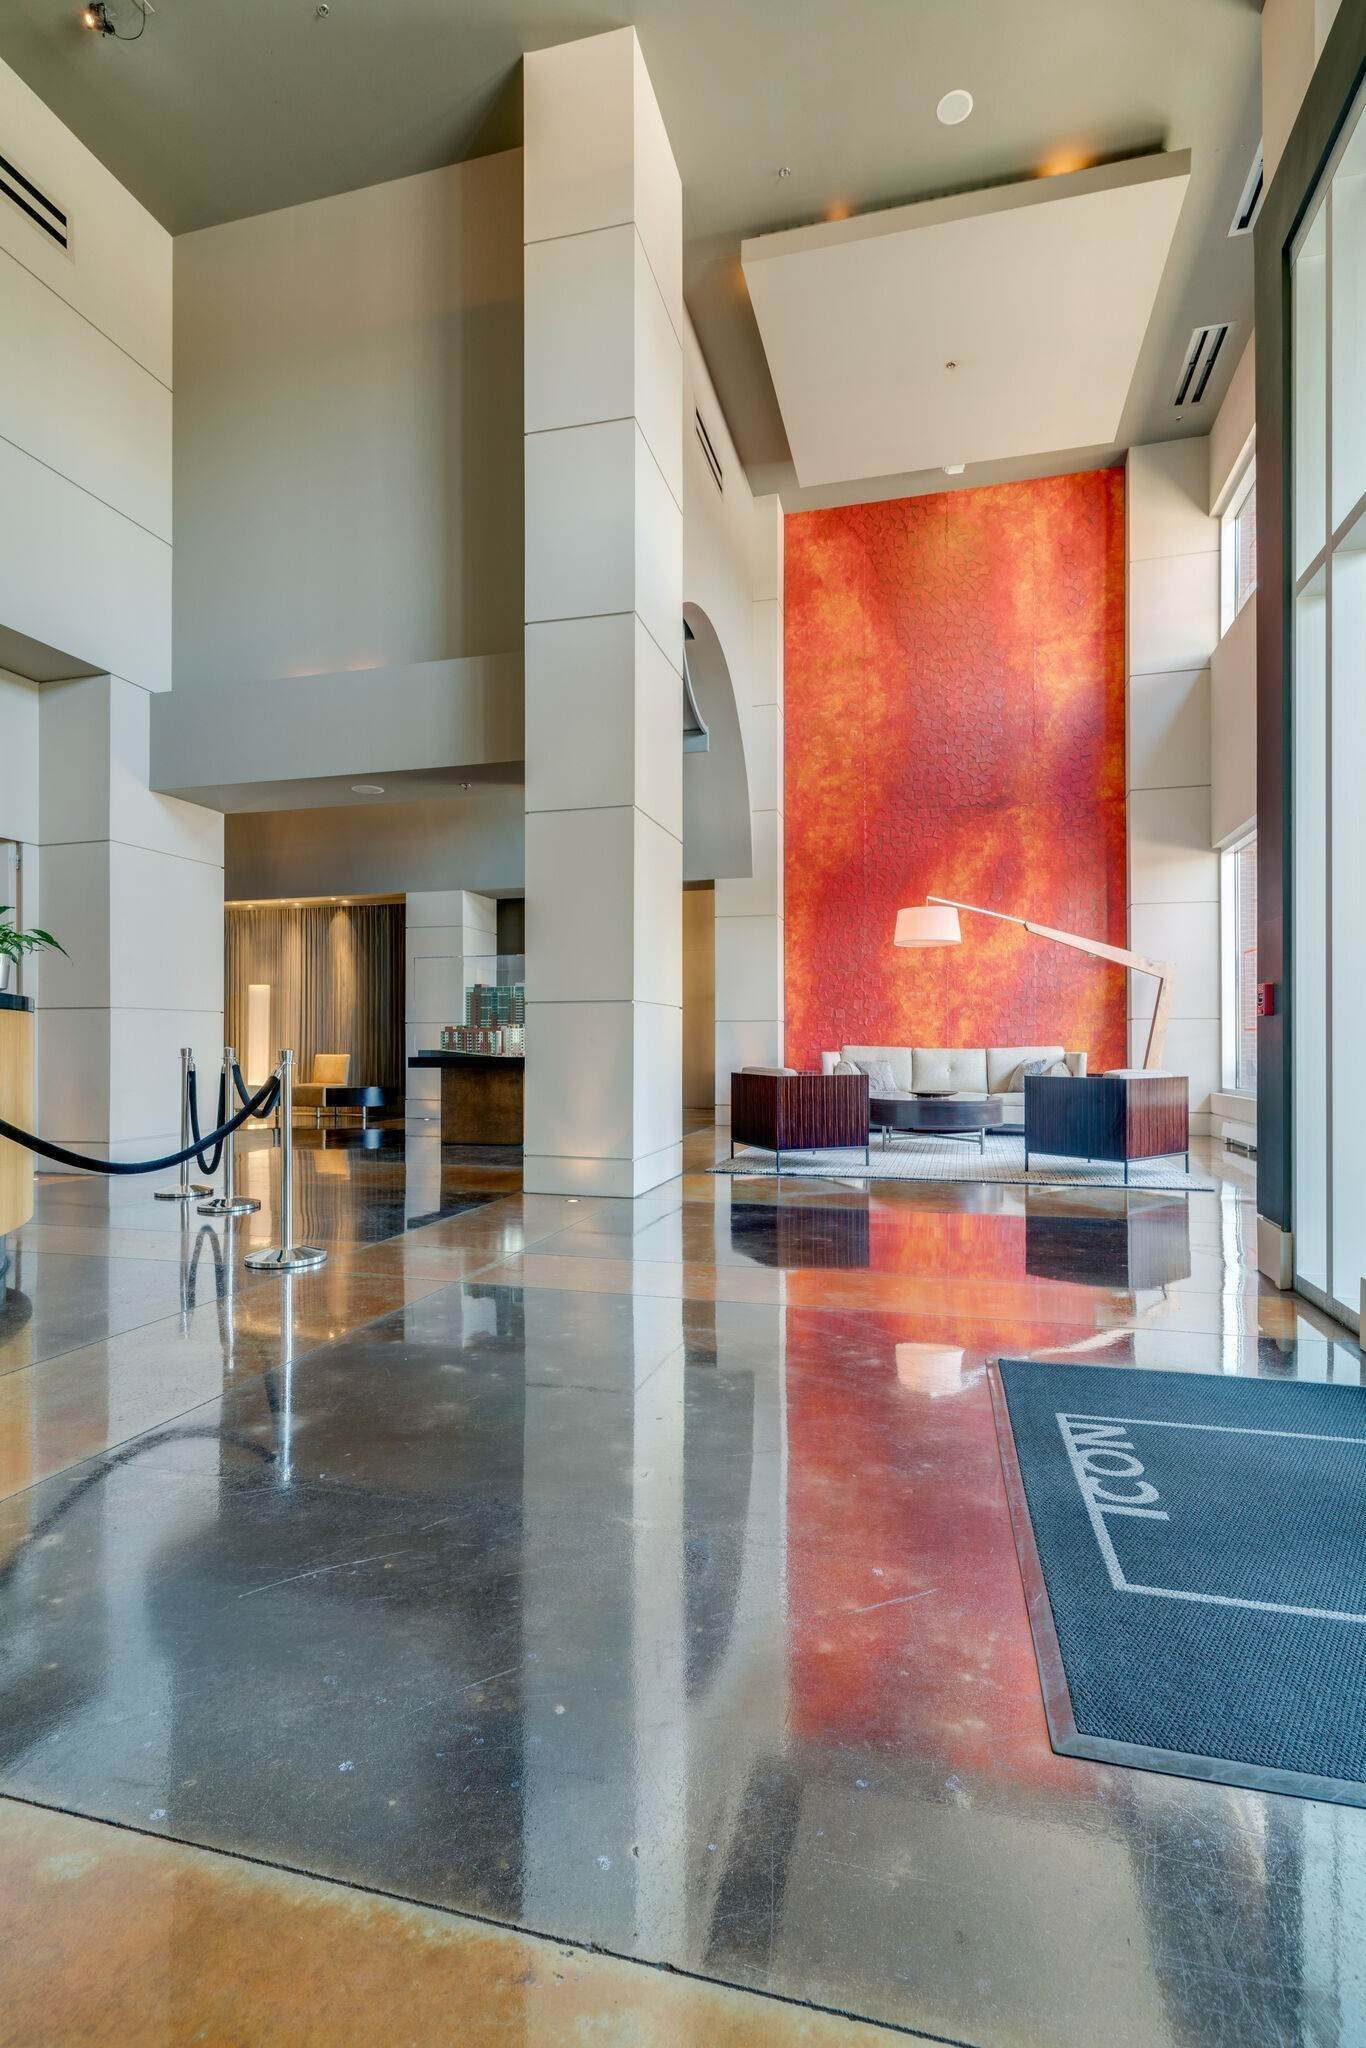 17. High Rise for Sale at 600 12th Ave, S Nashville, Tennessee 37203 United States